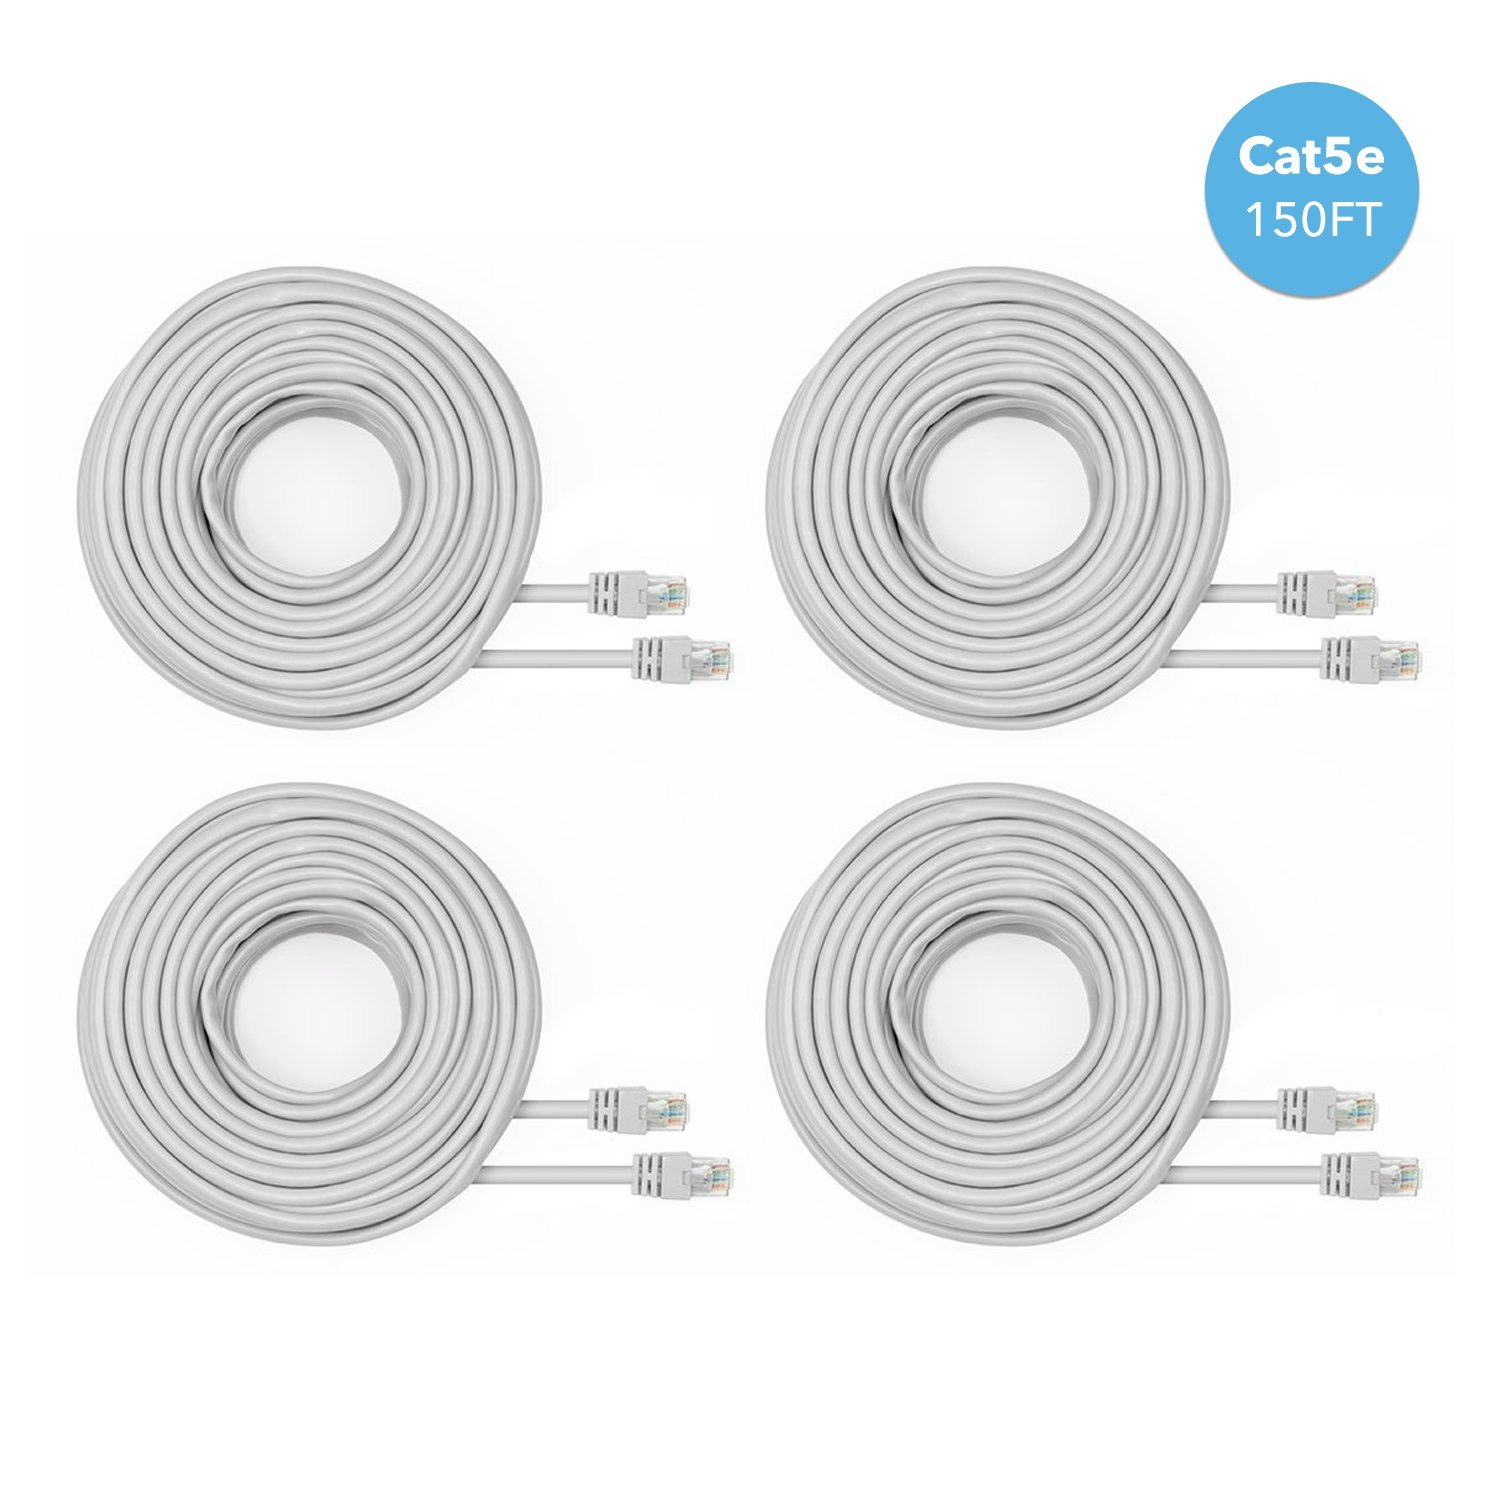 Amcrest Cat5e Cable 150ft Ethernet Cable Internet High Speed Network Cable for POE Security Cameras, Smart TV, PS4, Xbox One, Router, Laptop, Computer, Home, 4-Pack (4PACK-CAT5ECABLE150)